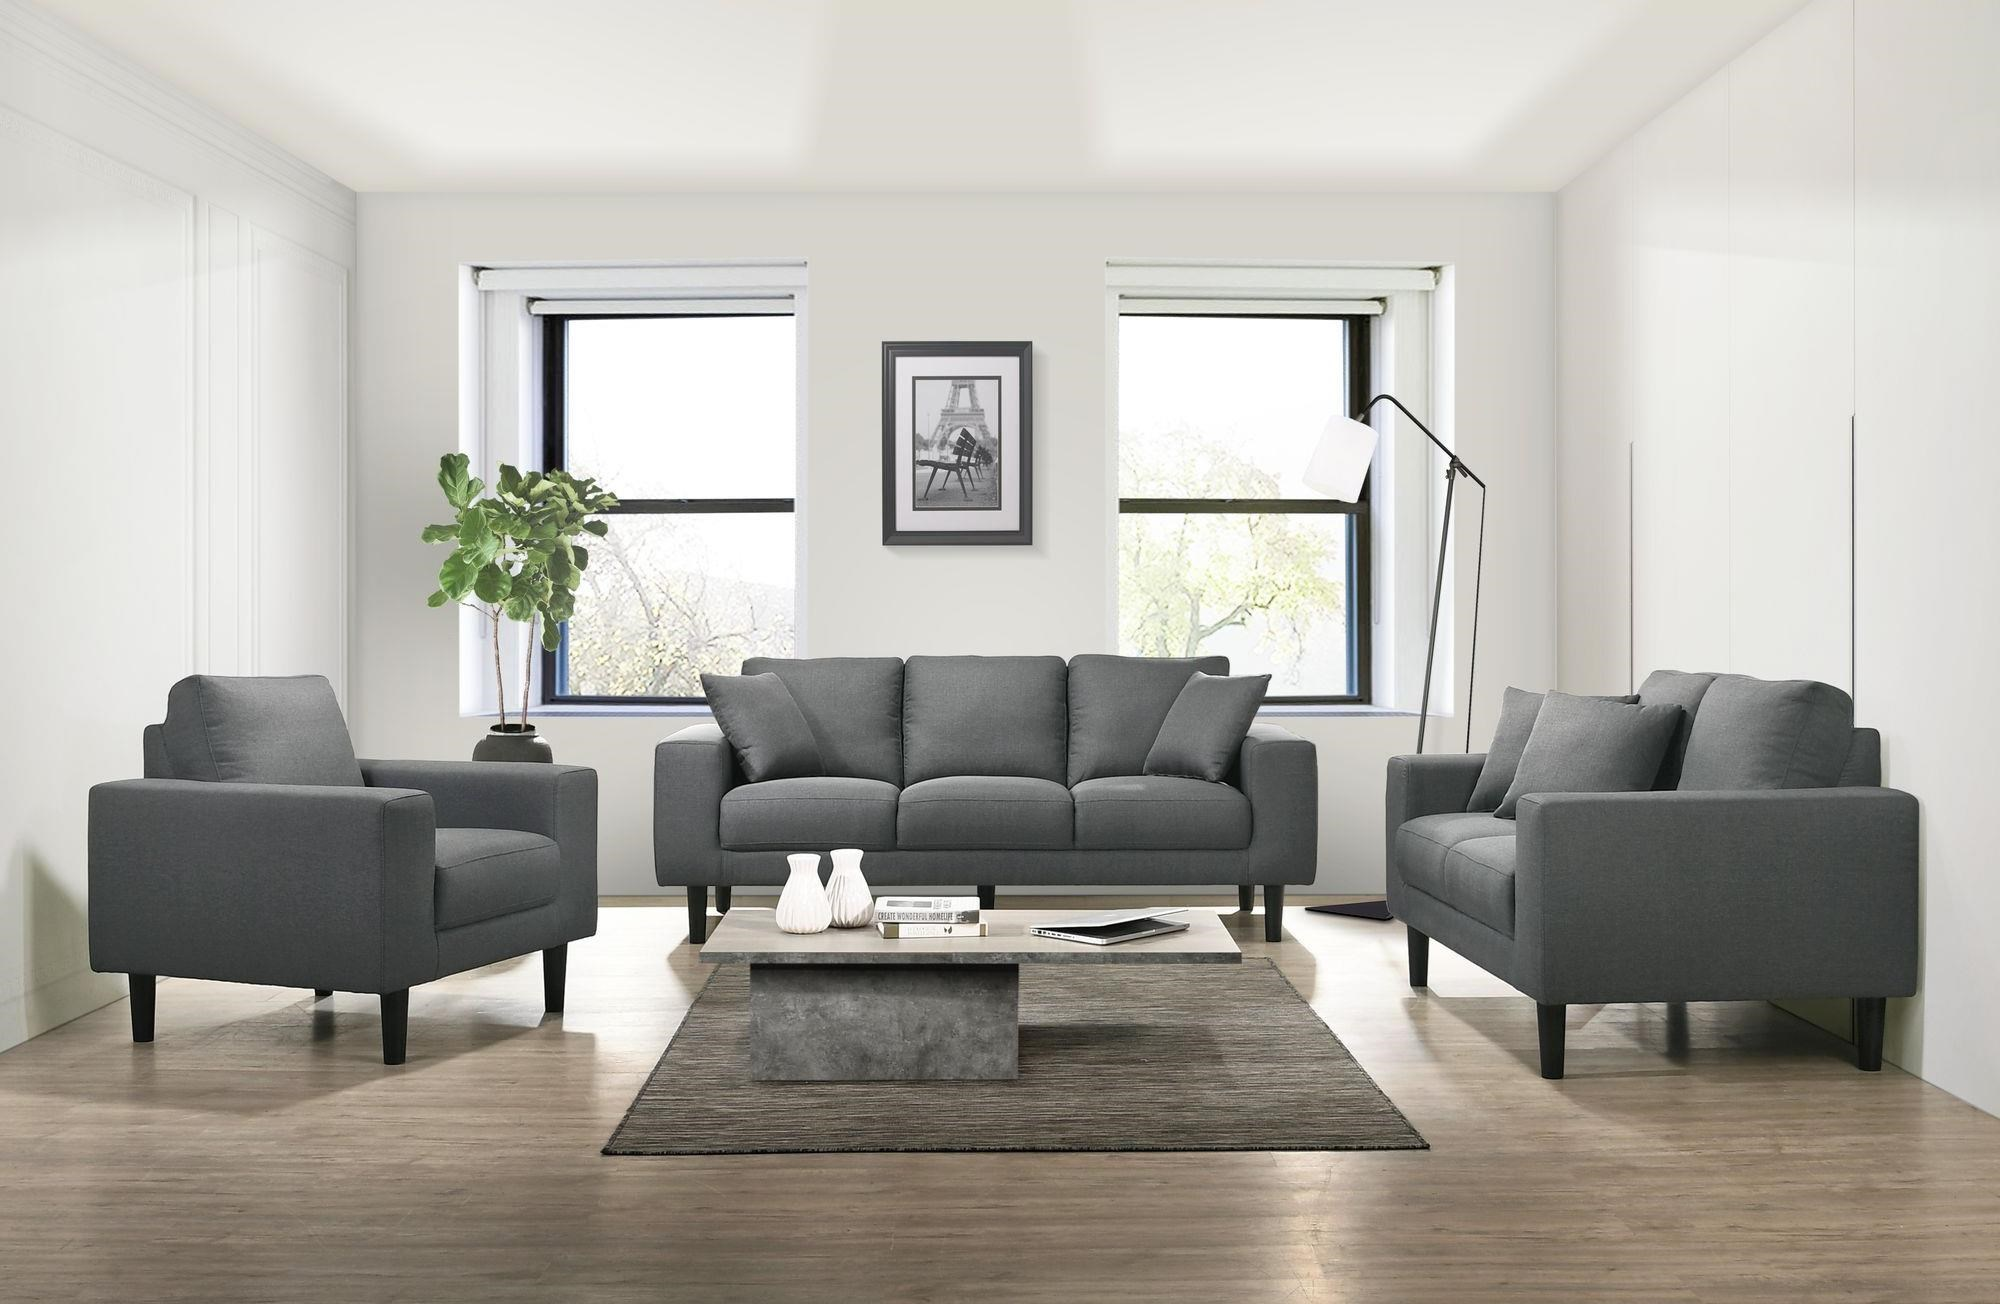 Elements International Apollo Midnight Usp 3450 Grey Sofa Loveseat And Chair Living Room Set Sam Levitz Furniture Stationary Living Room Groups